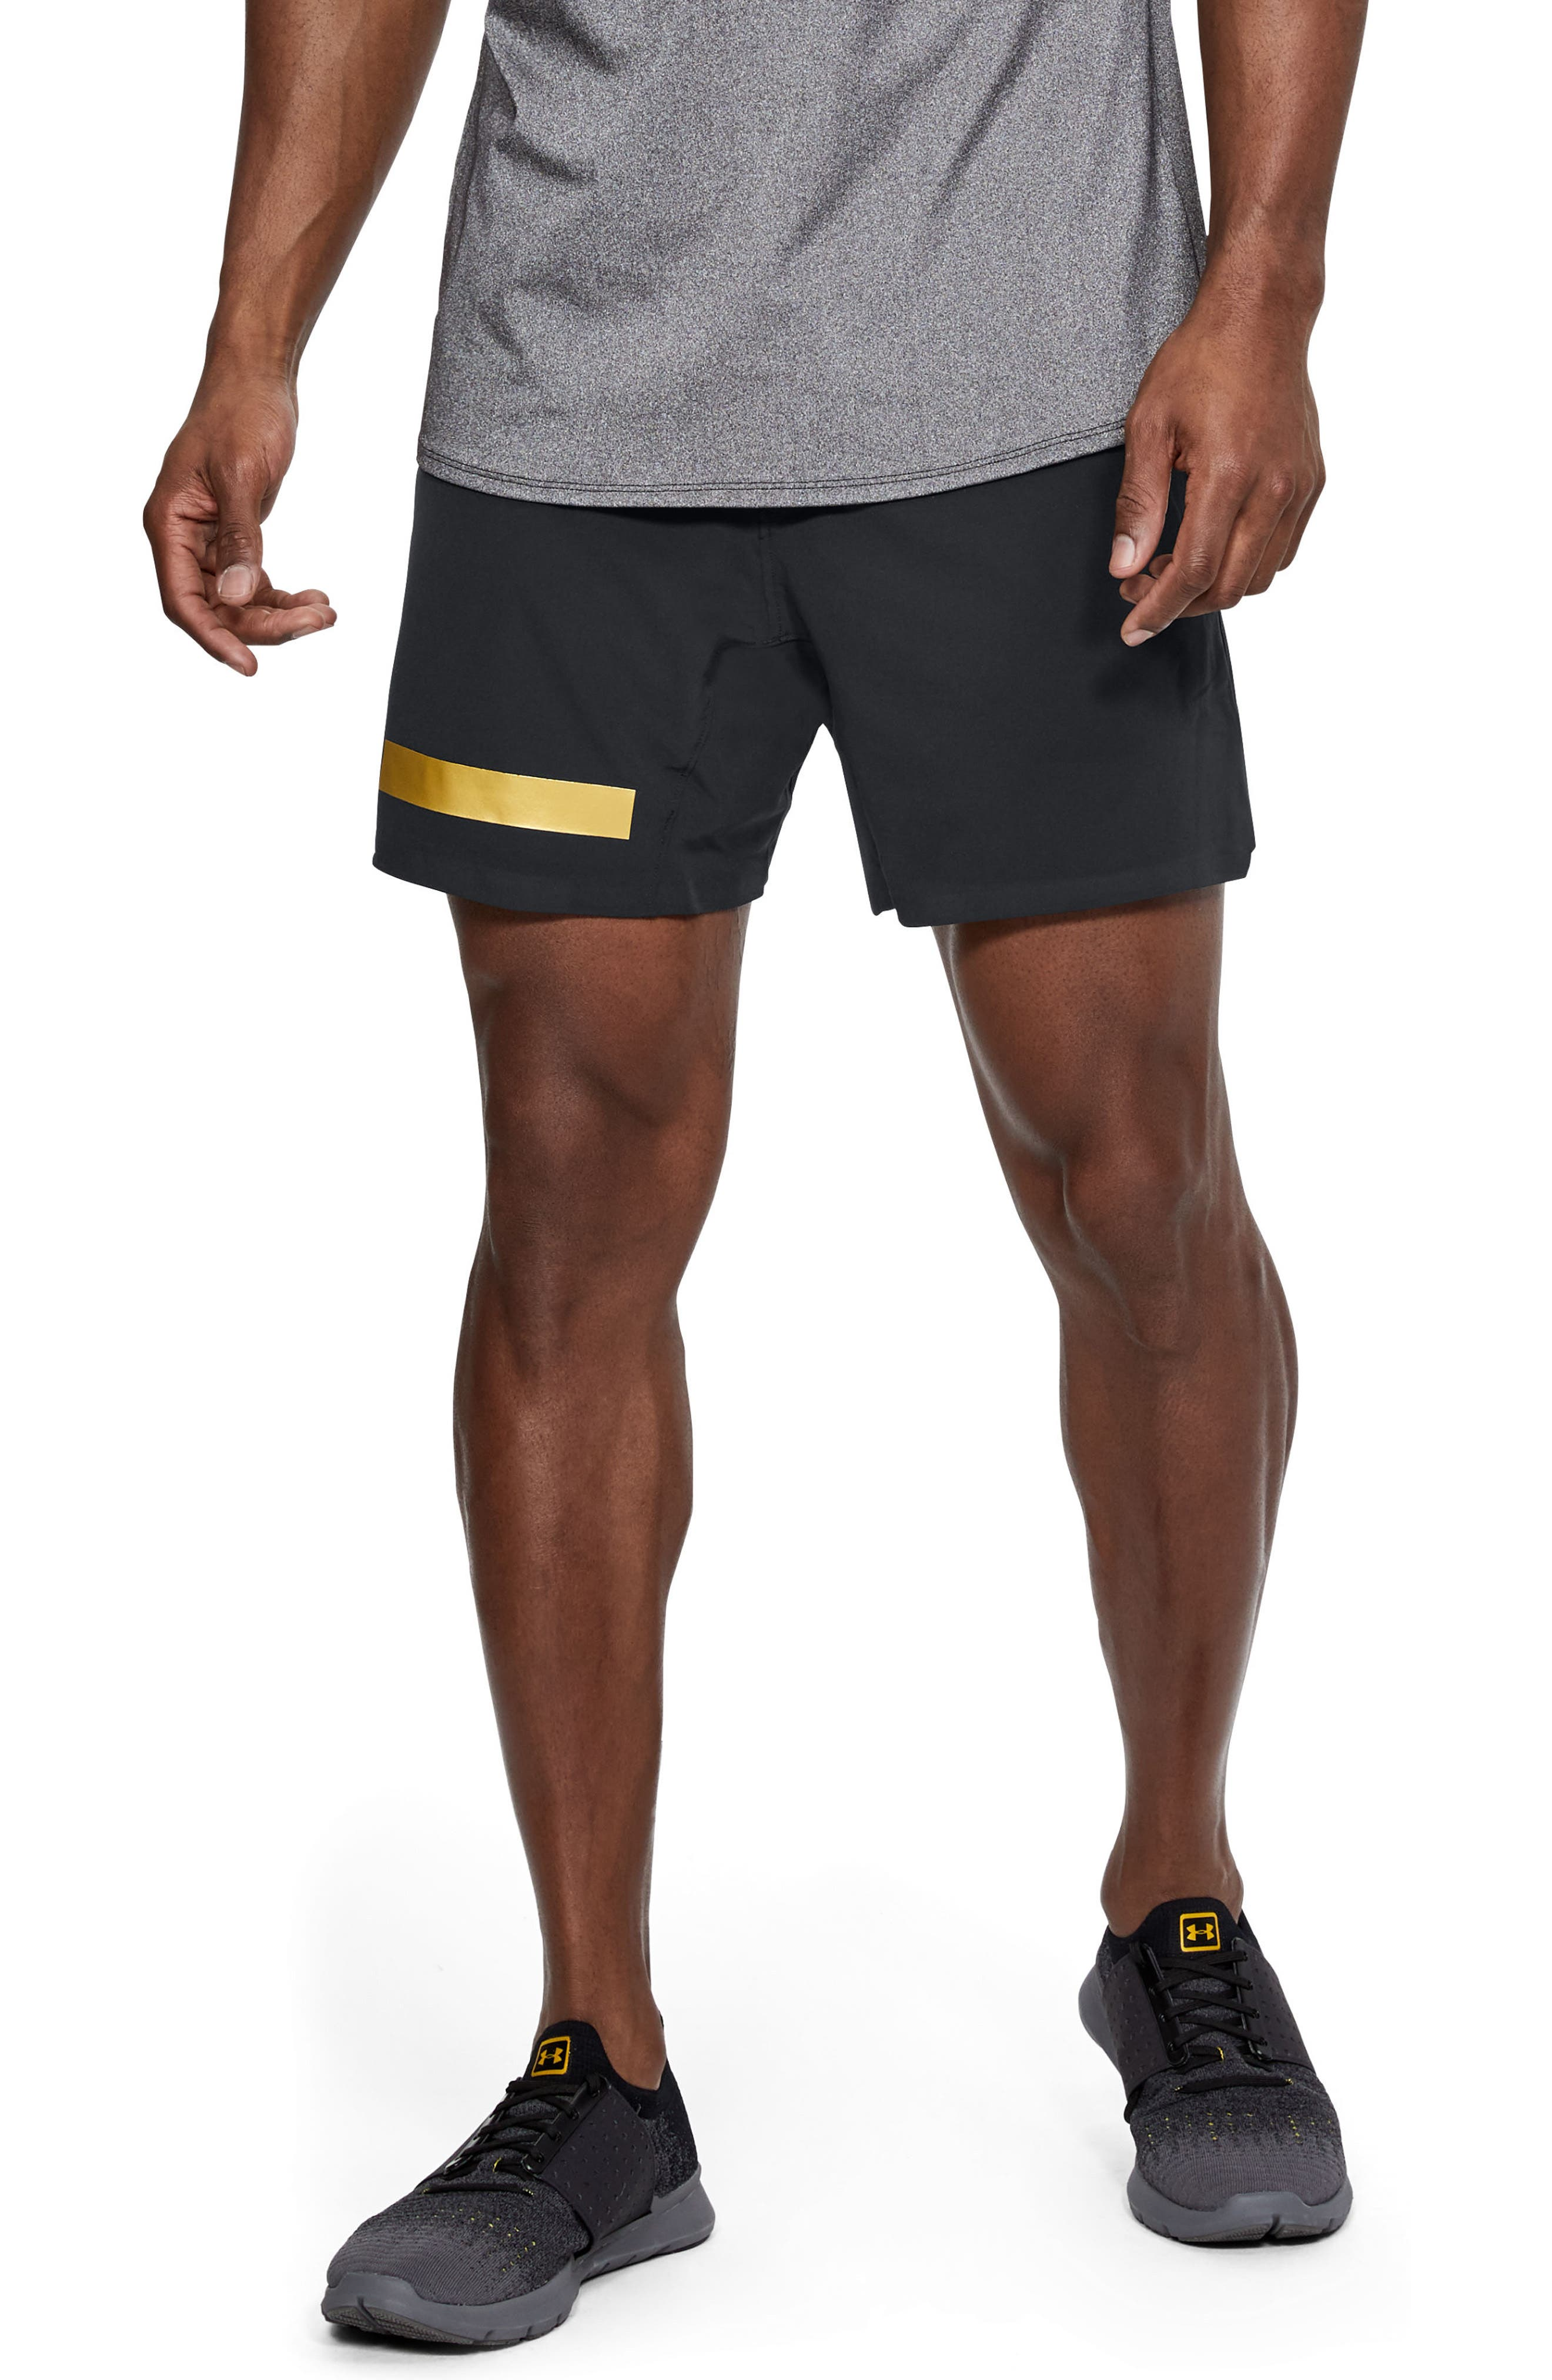 Perpetual Fitted Shorts,                         Main,                         color, Black/ Metallic Victory Gold